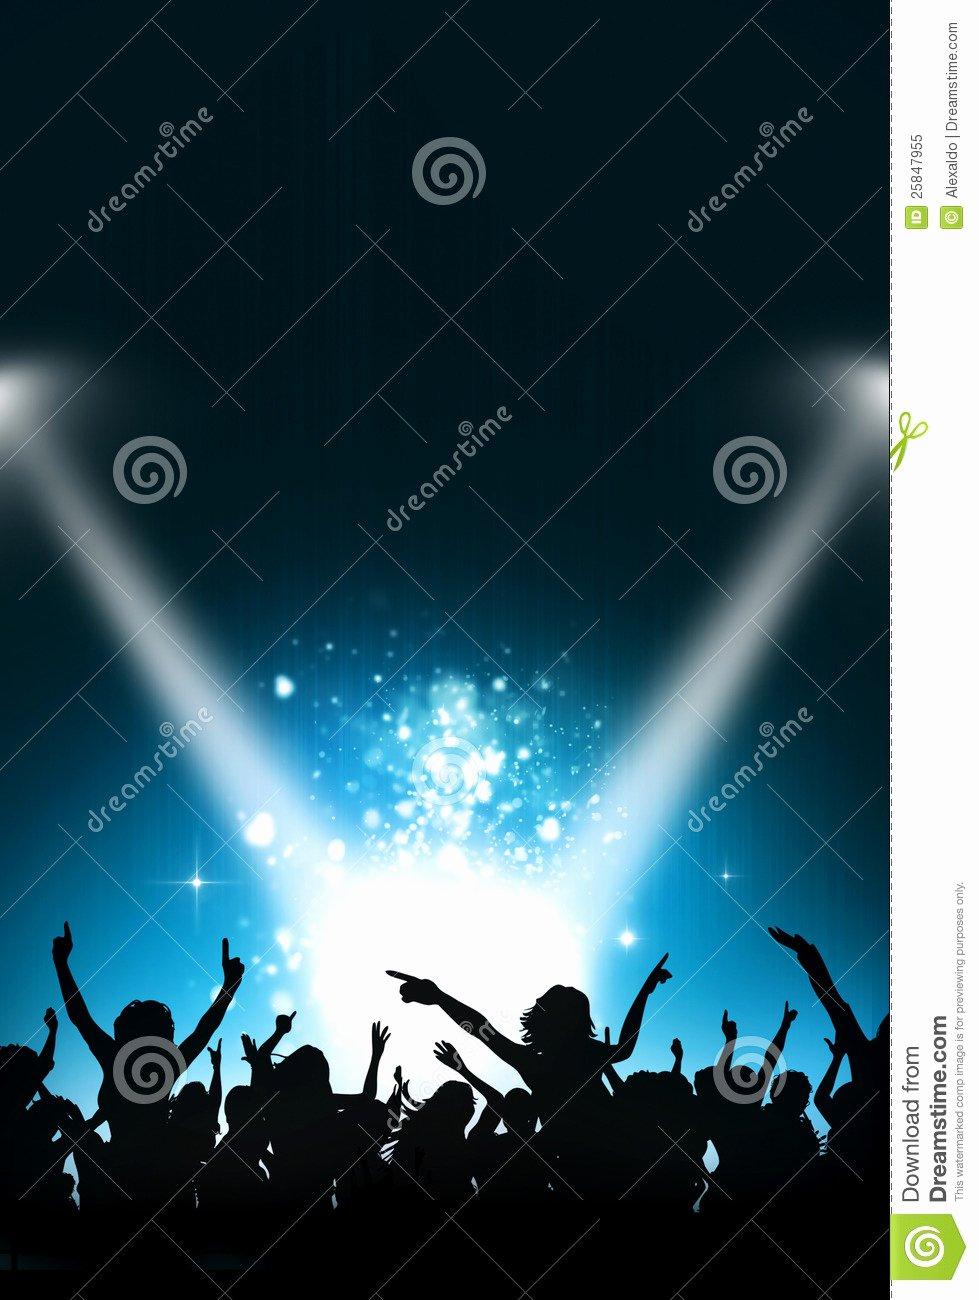 Party Backgrounds for Flyers Inspirational Flyers Wallpaper Wallpapersafari